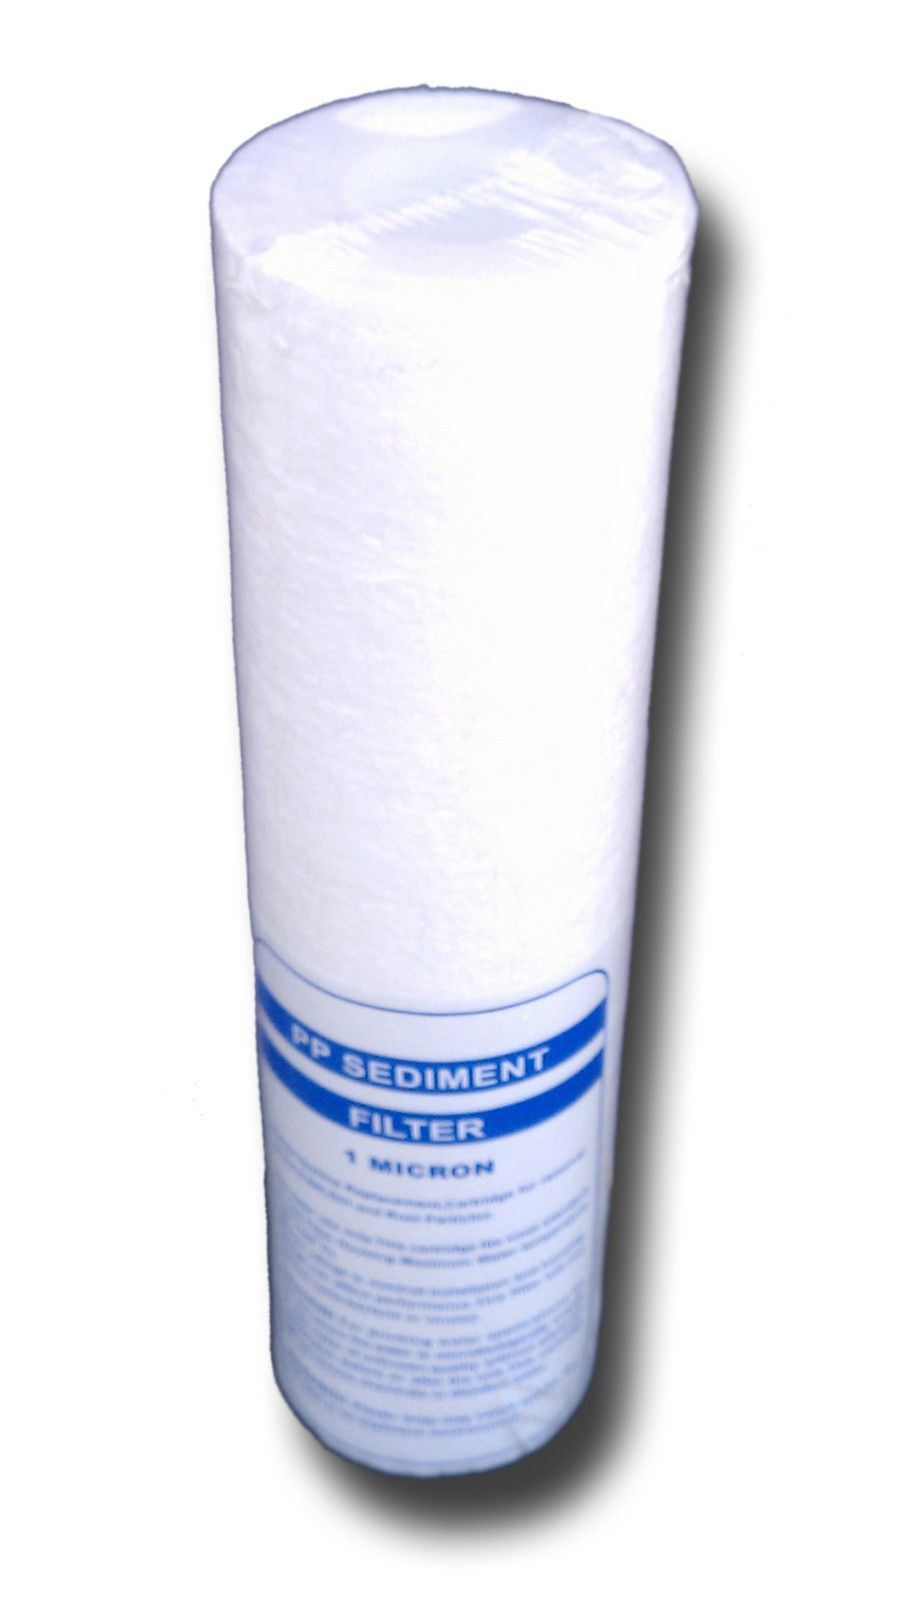 PP Sediment Filter 1 MICRON 2 Pack